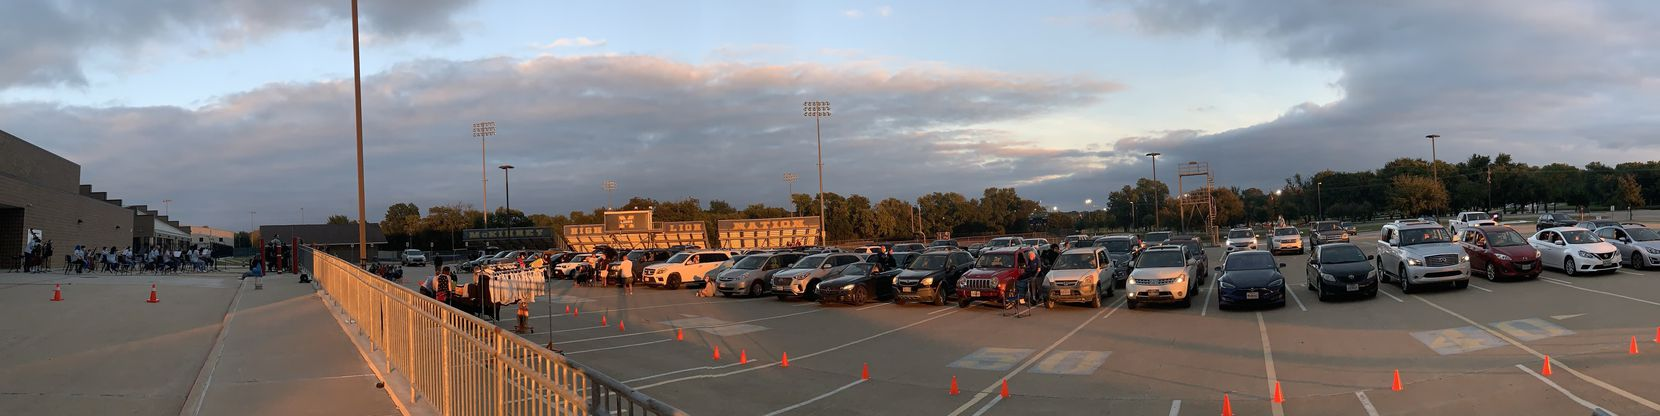 A photo displays the setup of last week's McKinney High School orchestra concert, which saw students perform on the loading dock and the music broadcast to spectators in their cars or practicing social distancing in front of the loading dock.